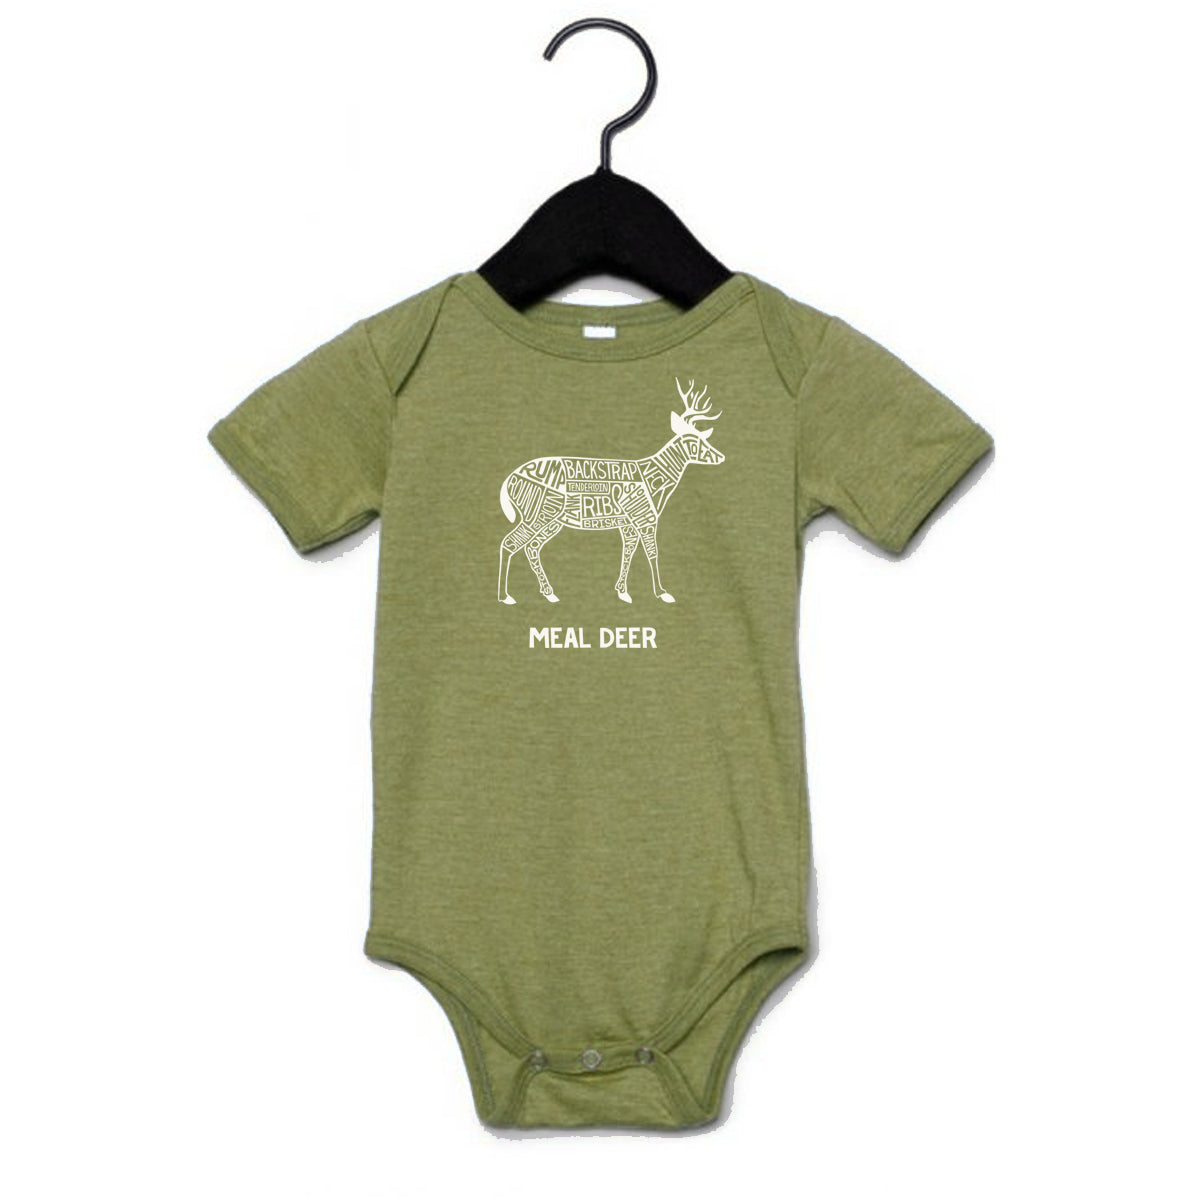 c5171174e634 Meal Deer Onesie – Hunt To Eat